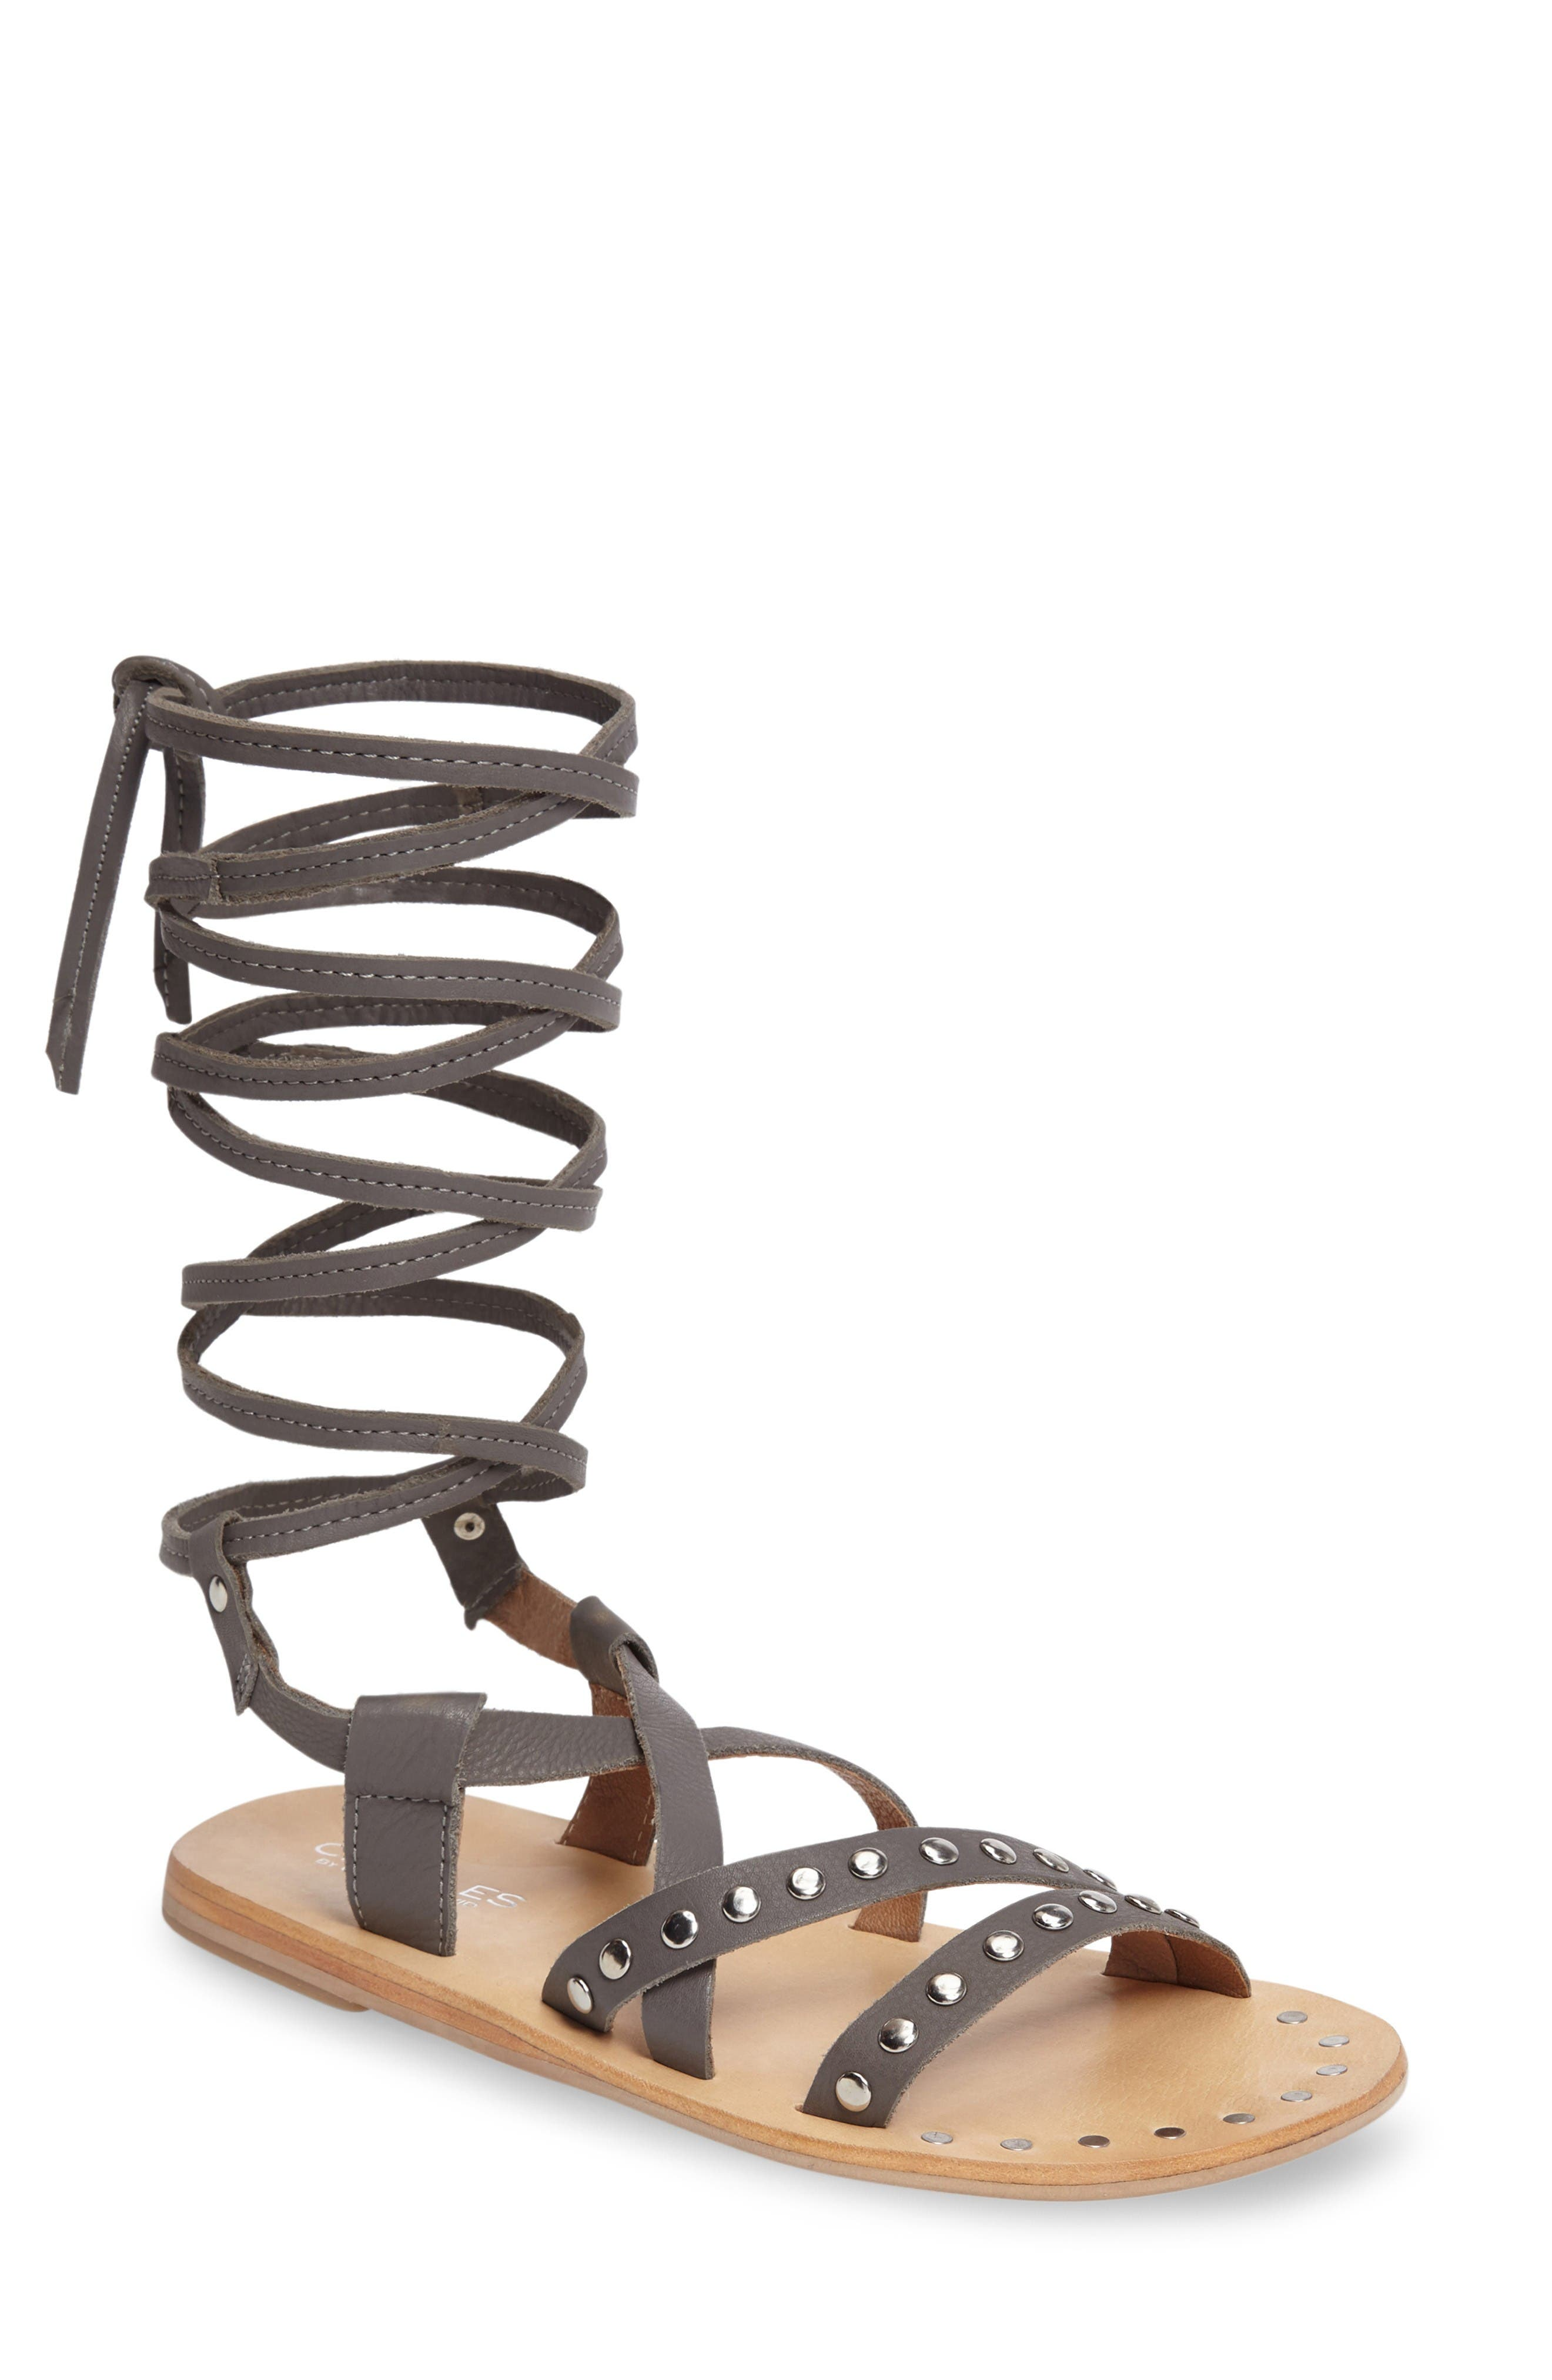 Steeler Ankle Wrap Sandal,                             Main thumbnail 1, color,                             Light Grey Leather